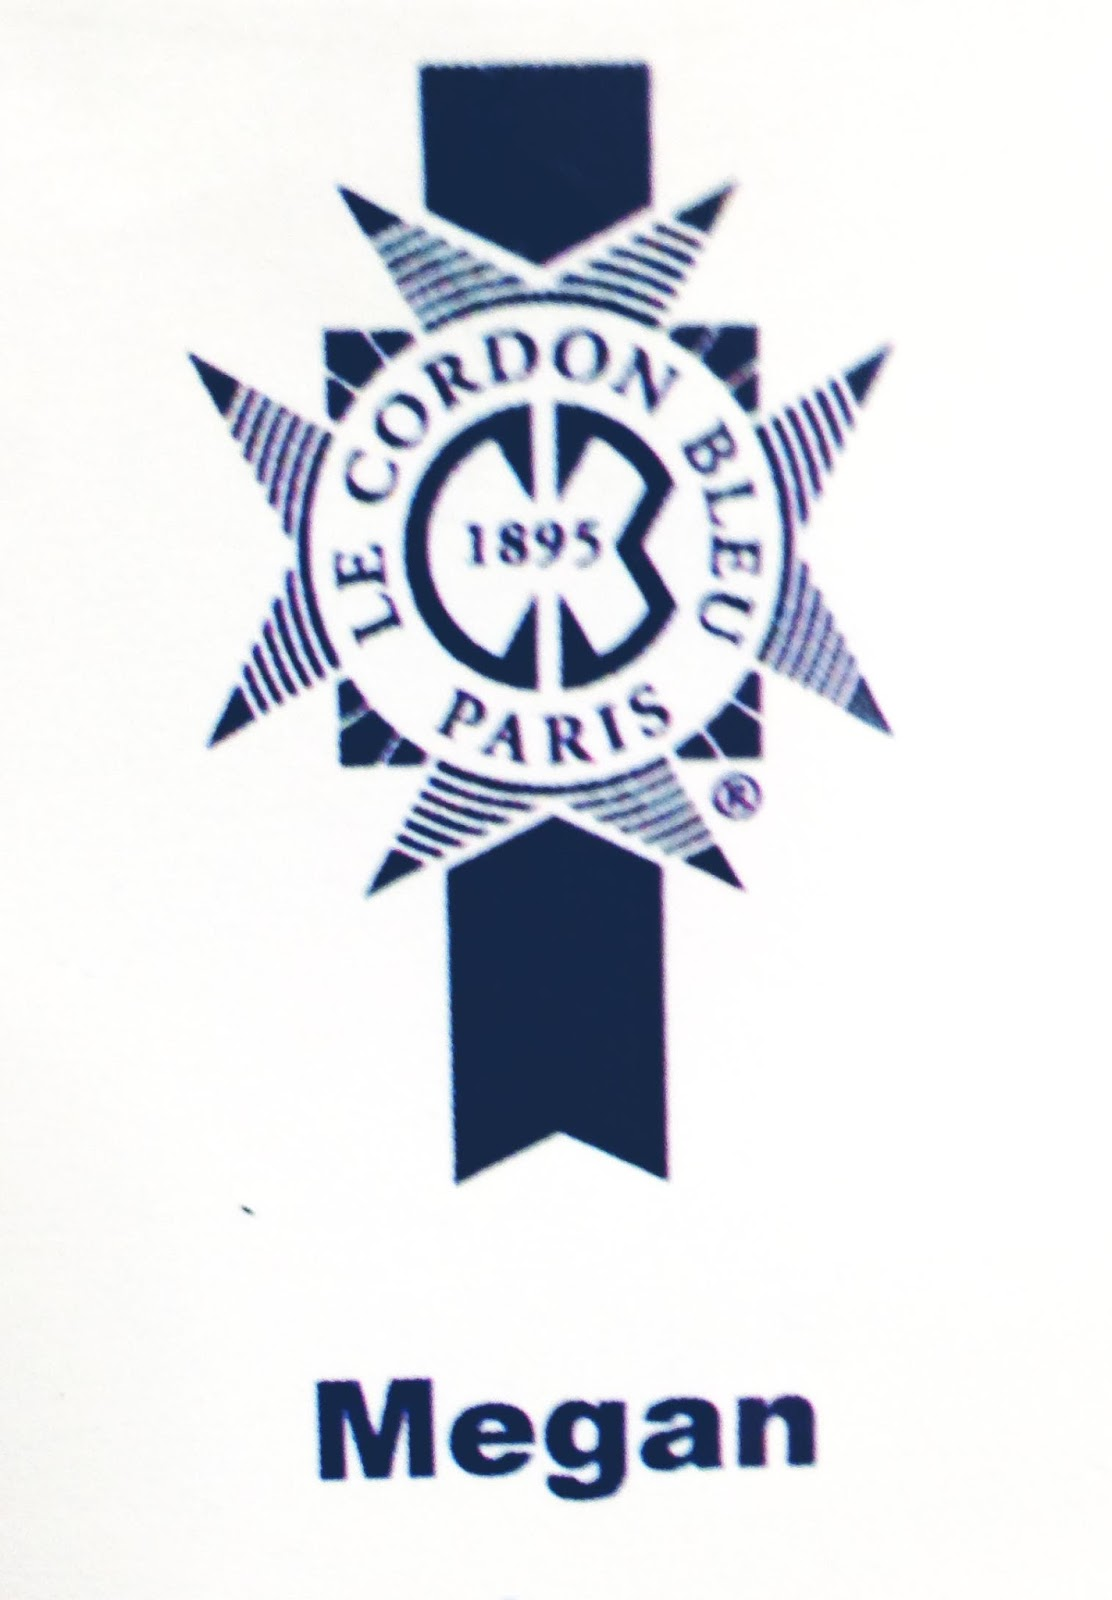 meg-made Le Cordon Bleu London